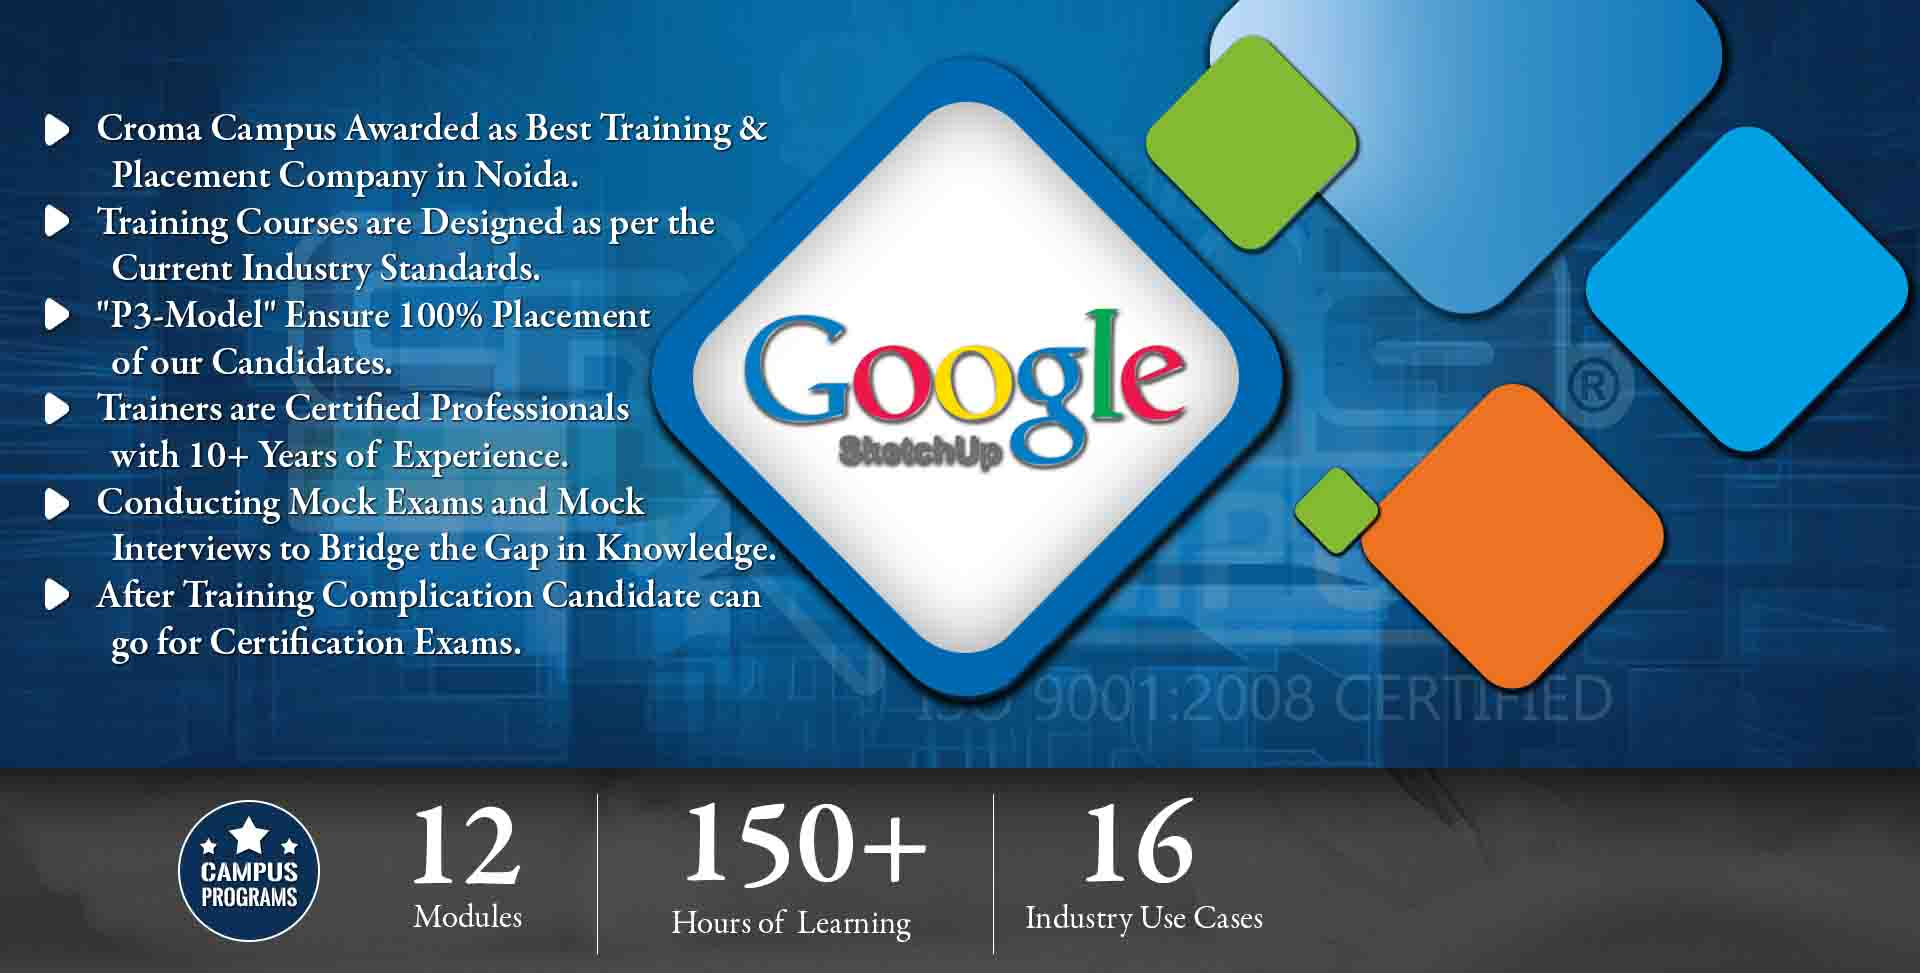 Google SketchUp Training in Noida- Croma Campus